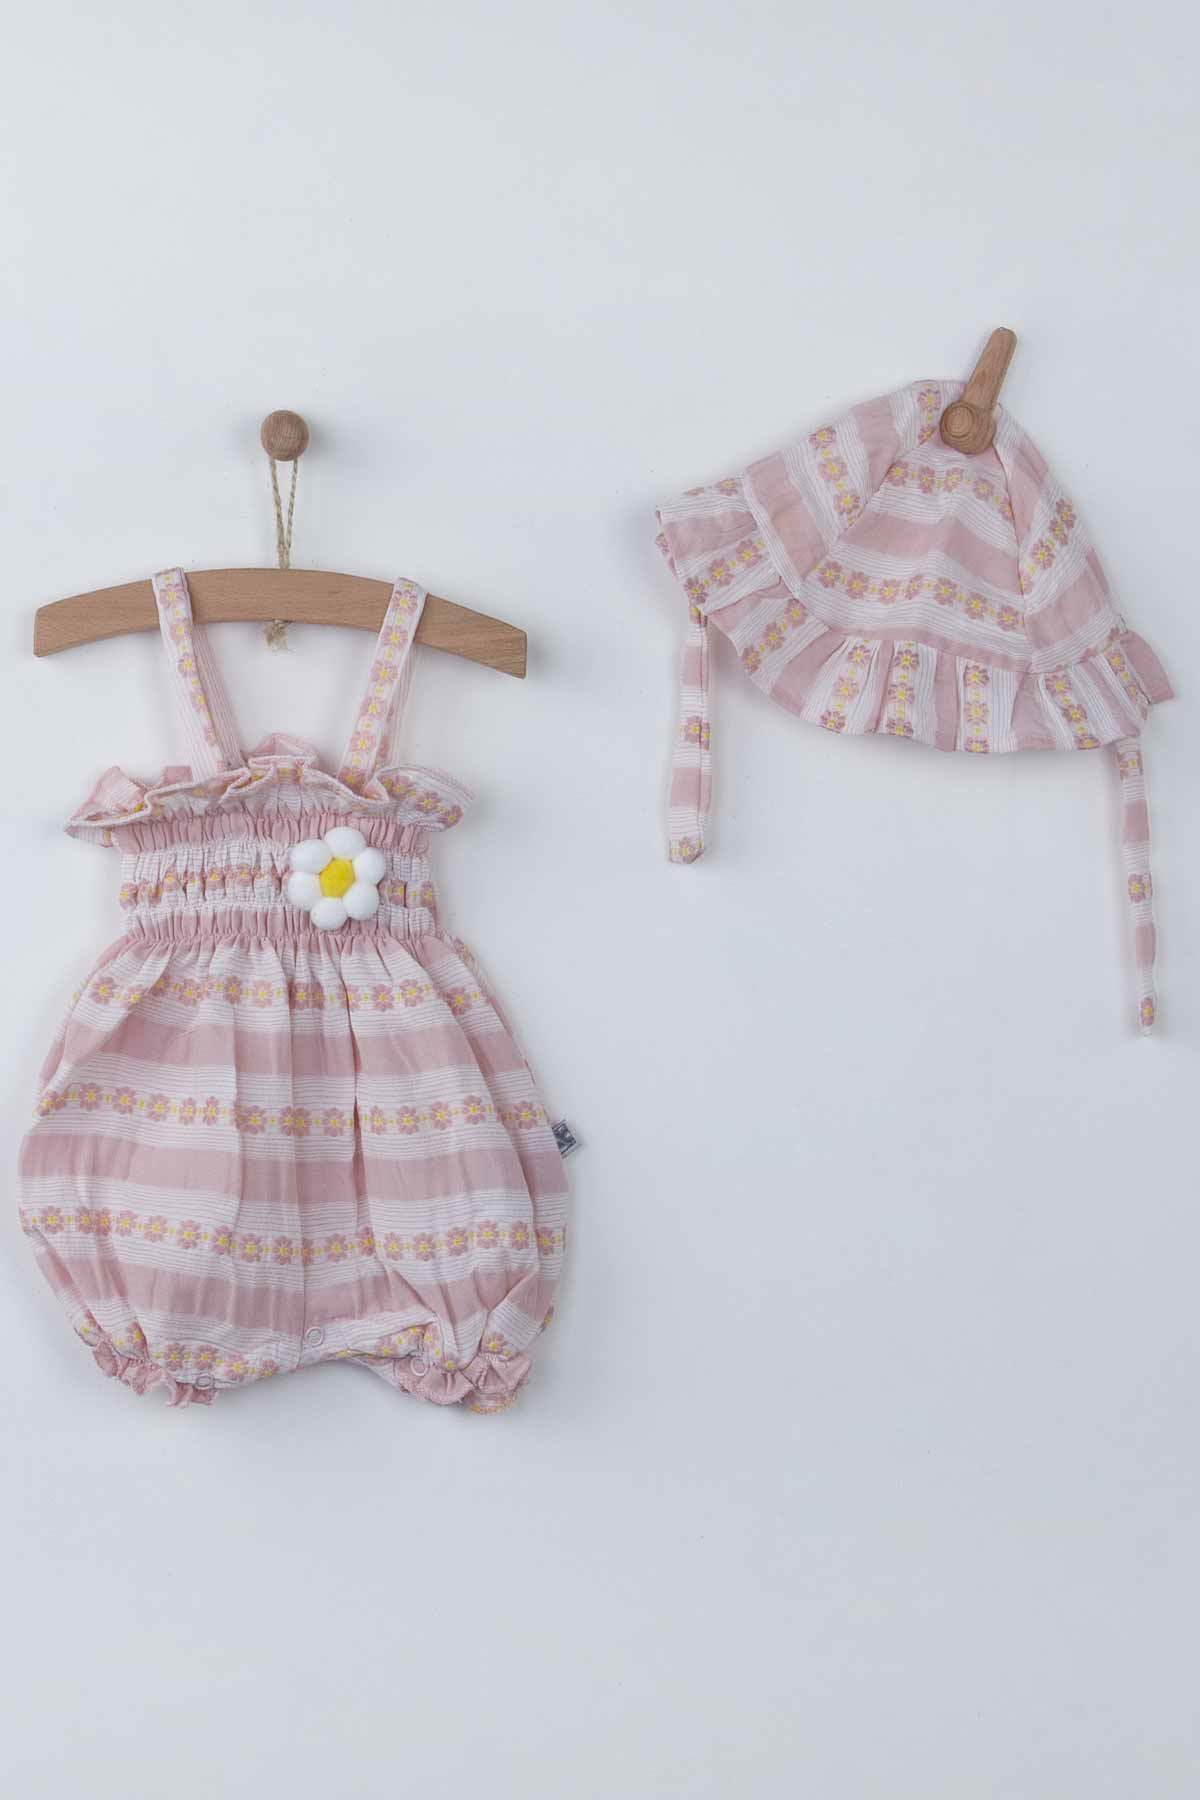 Baby Girls Rompers with Hat Summer 2-piece Suit Clothes Set Jumpsuit Hat Cute Adorable Babies outfit Holiday Beach wear Clothing